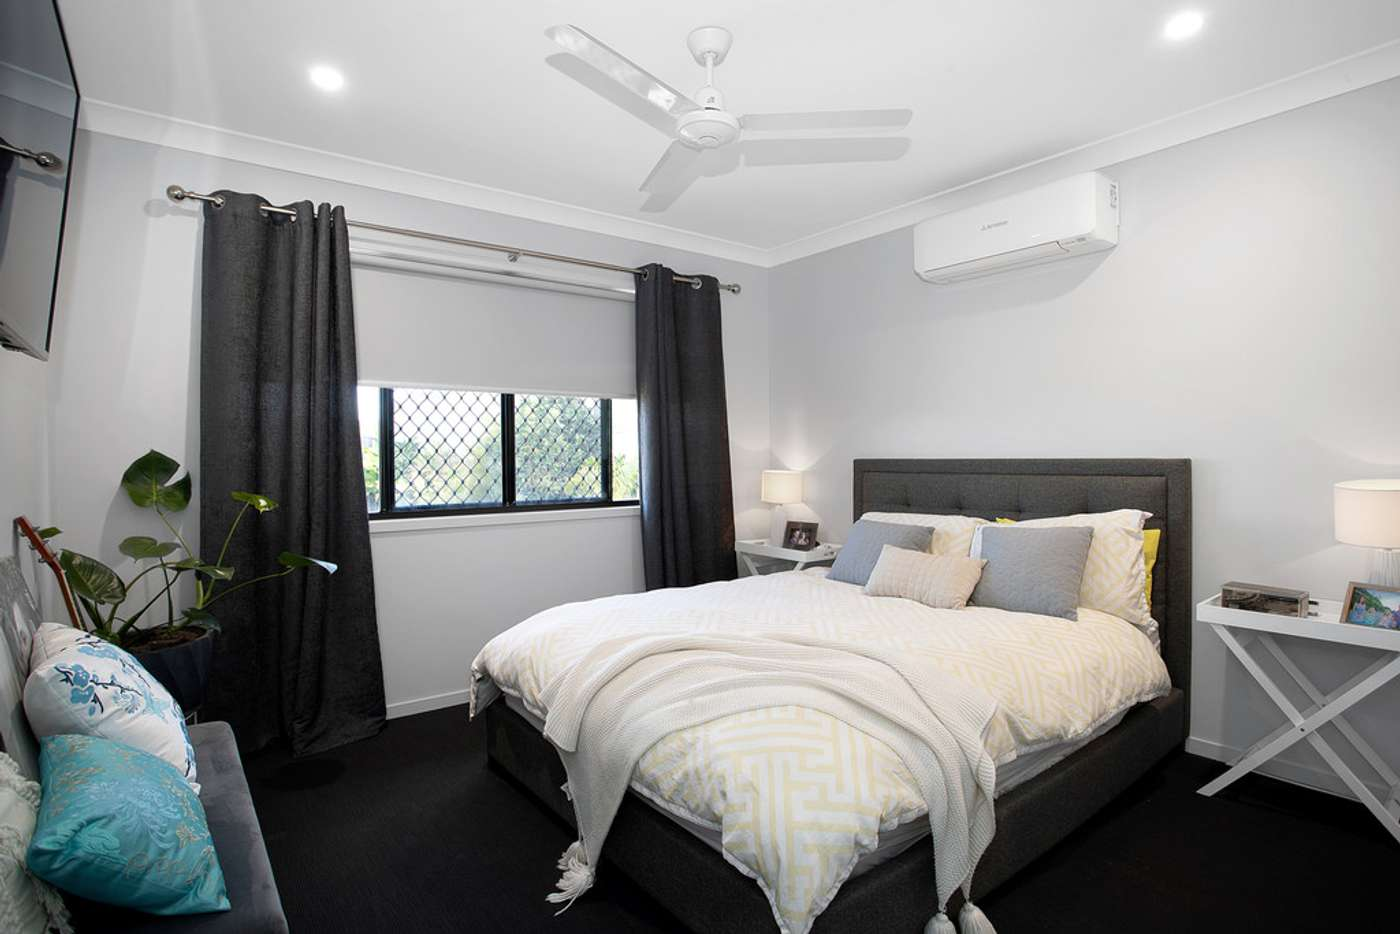 Sixth view of Homely house listing, 18 Darcy Boulevard, Beaconsfield QLD 4740